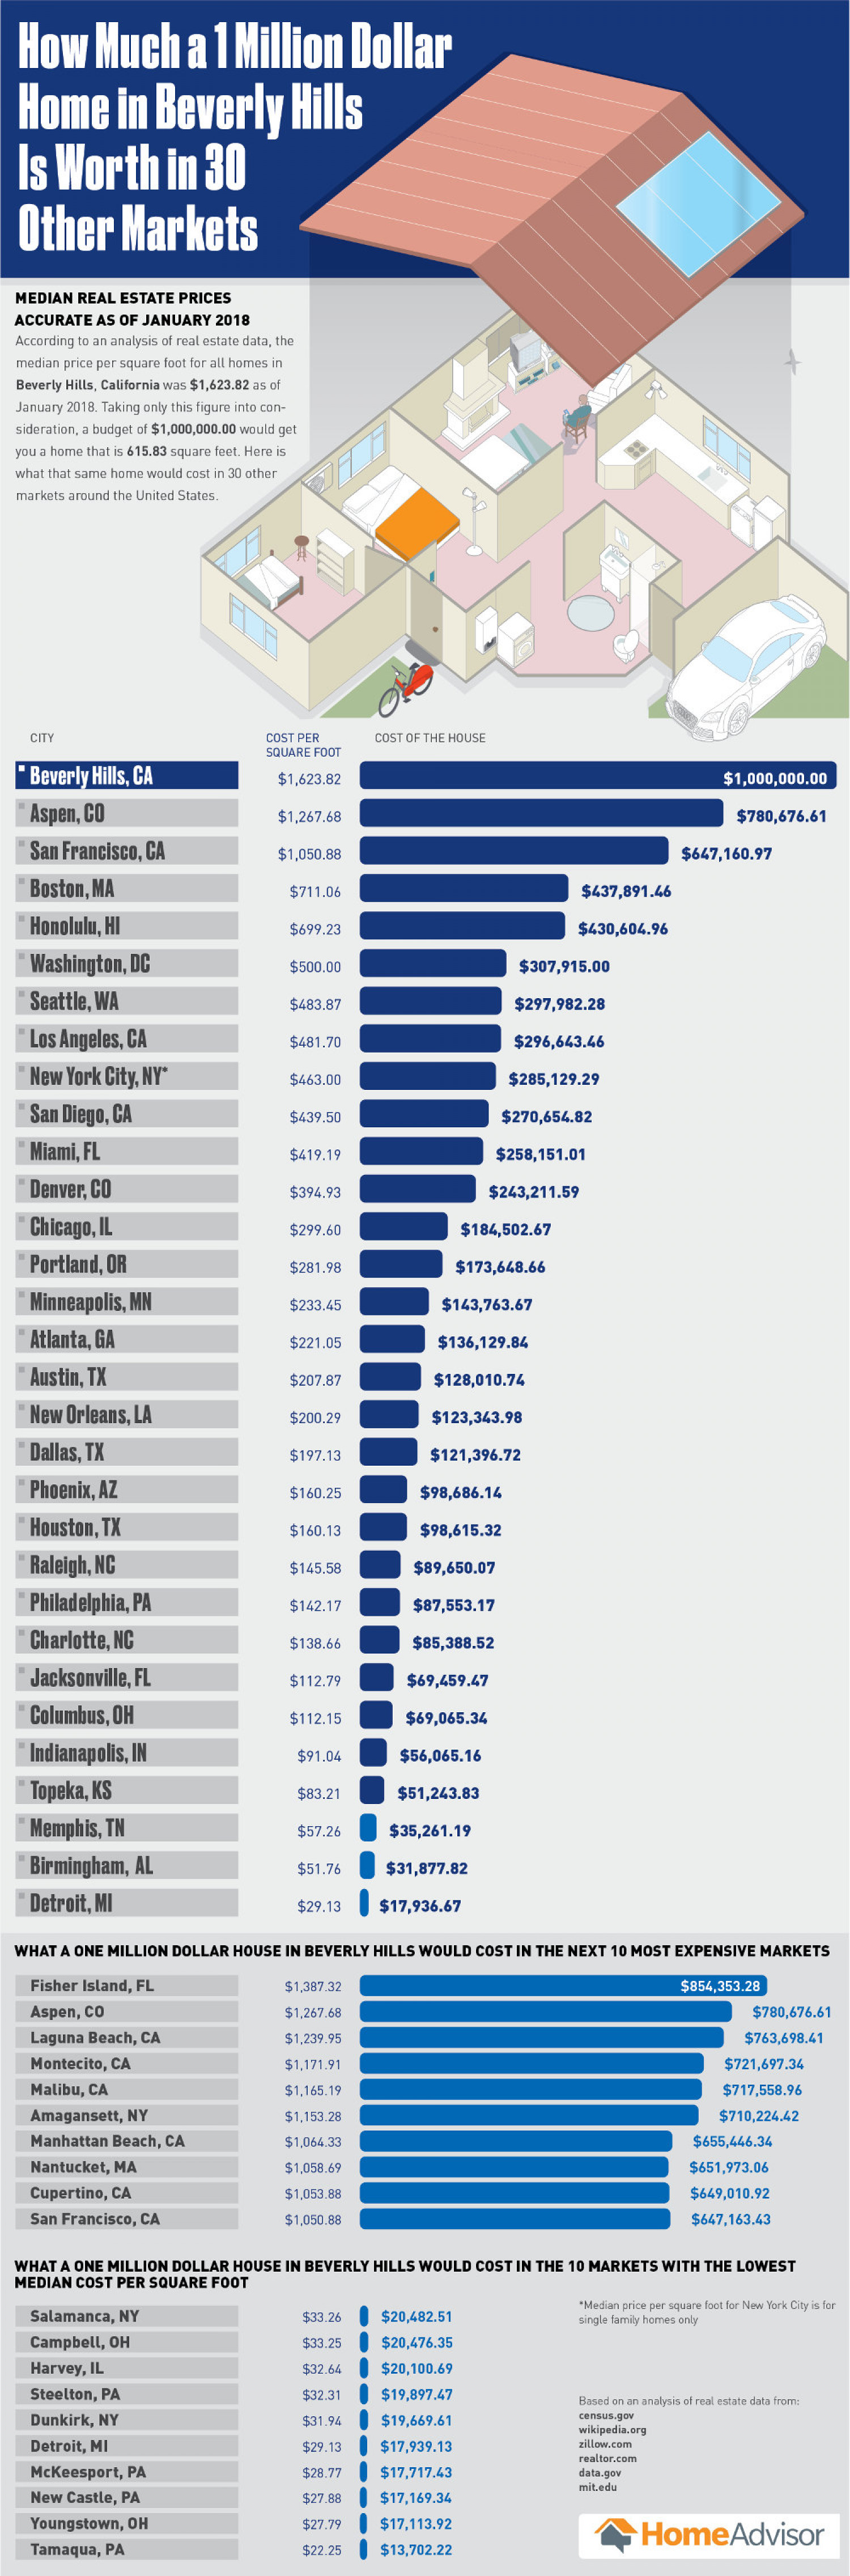 How Much a One Million Dollar Home in Beverly Hills is Worth in 30 Other Markets Infographic